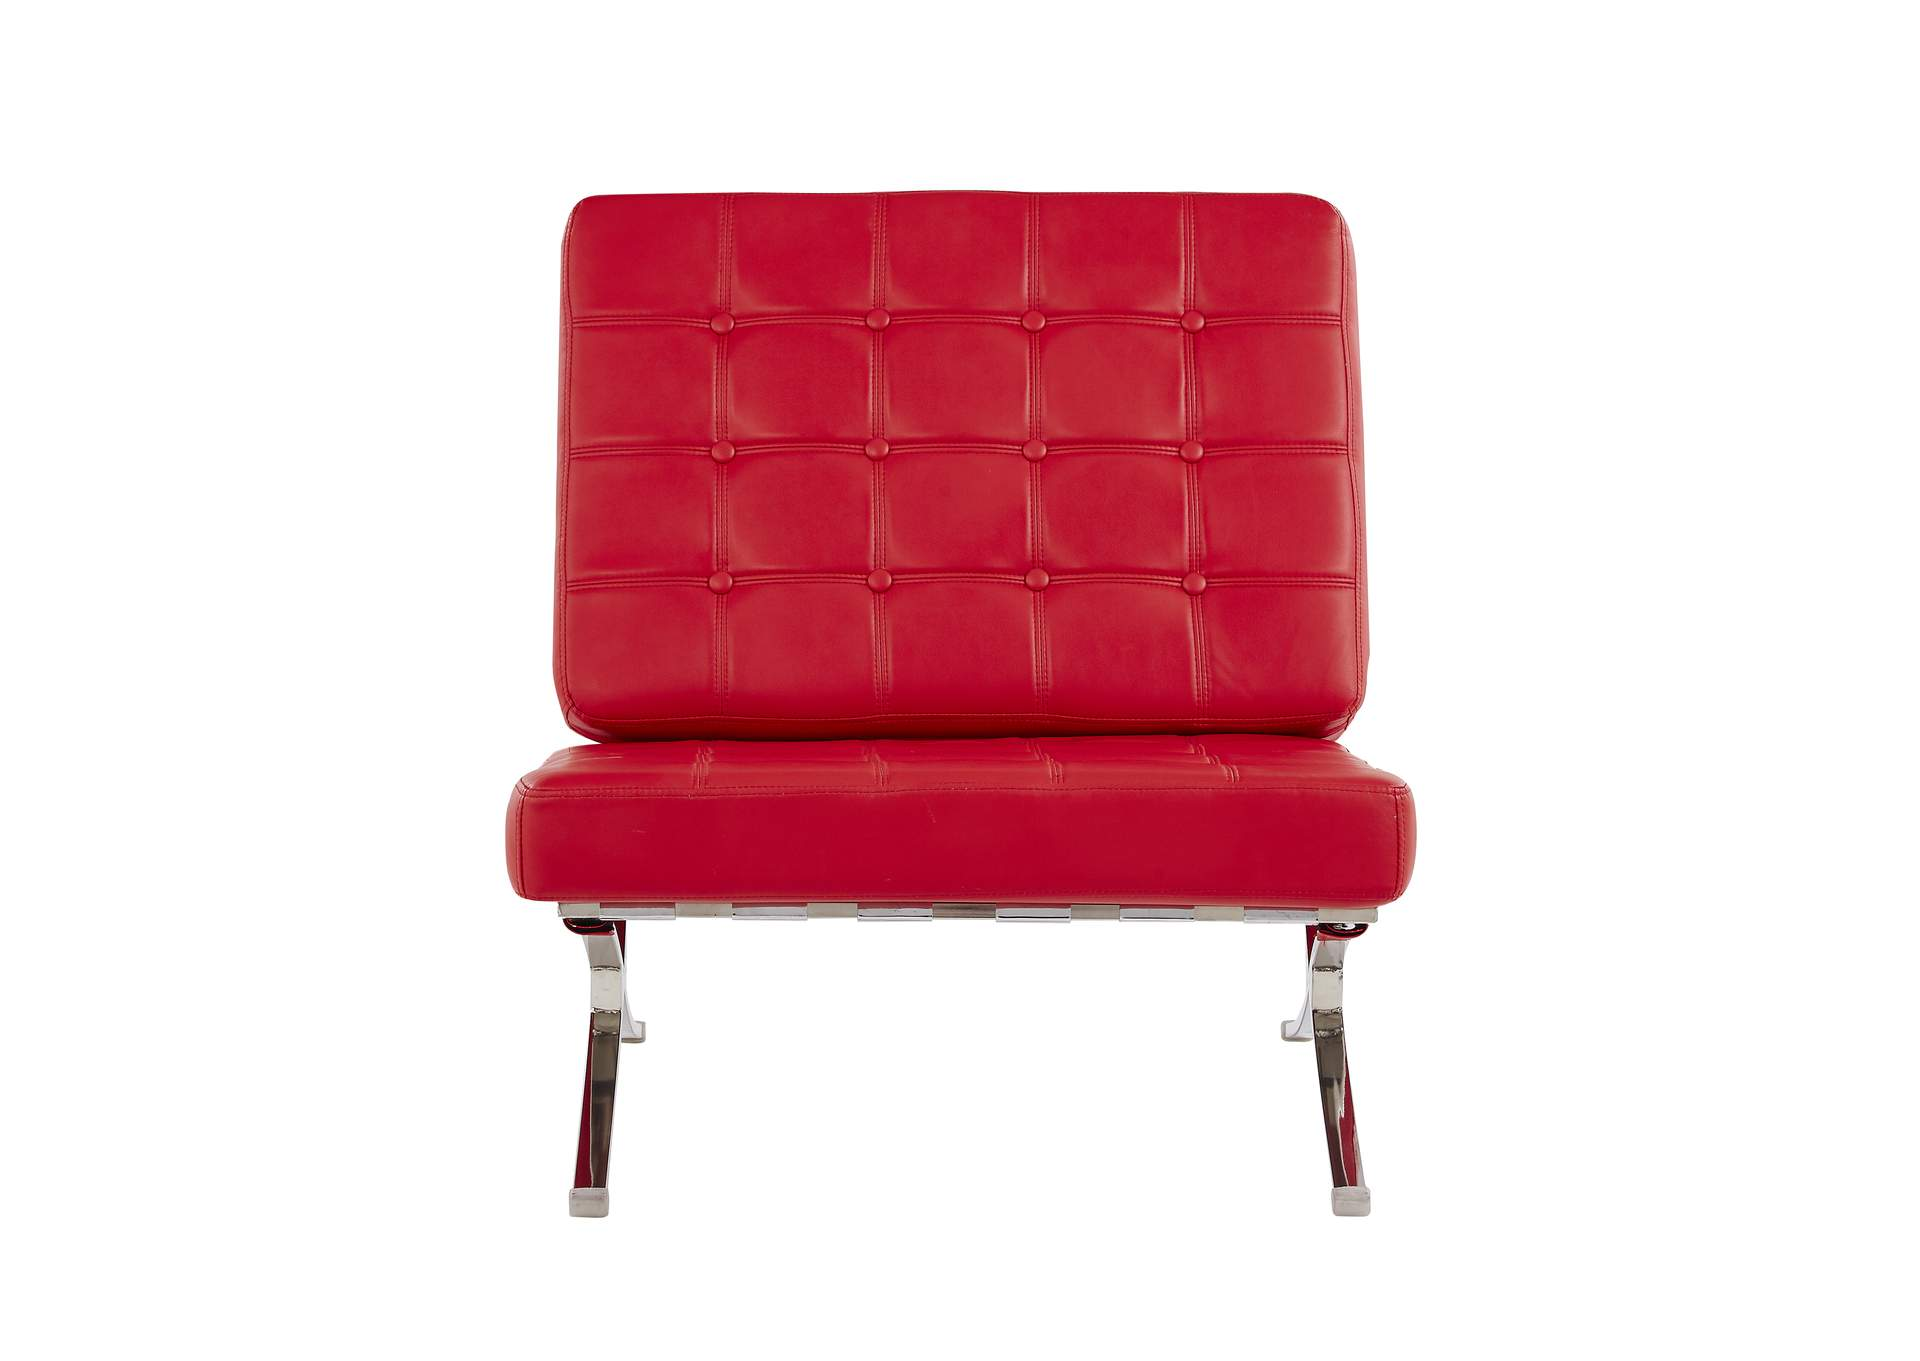 Natalie Red Chair,Global Furniture USA